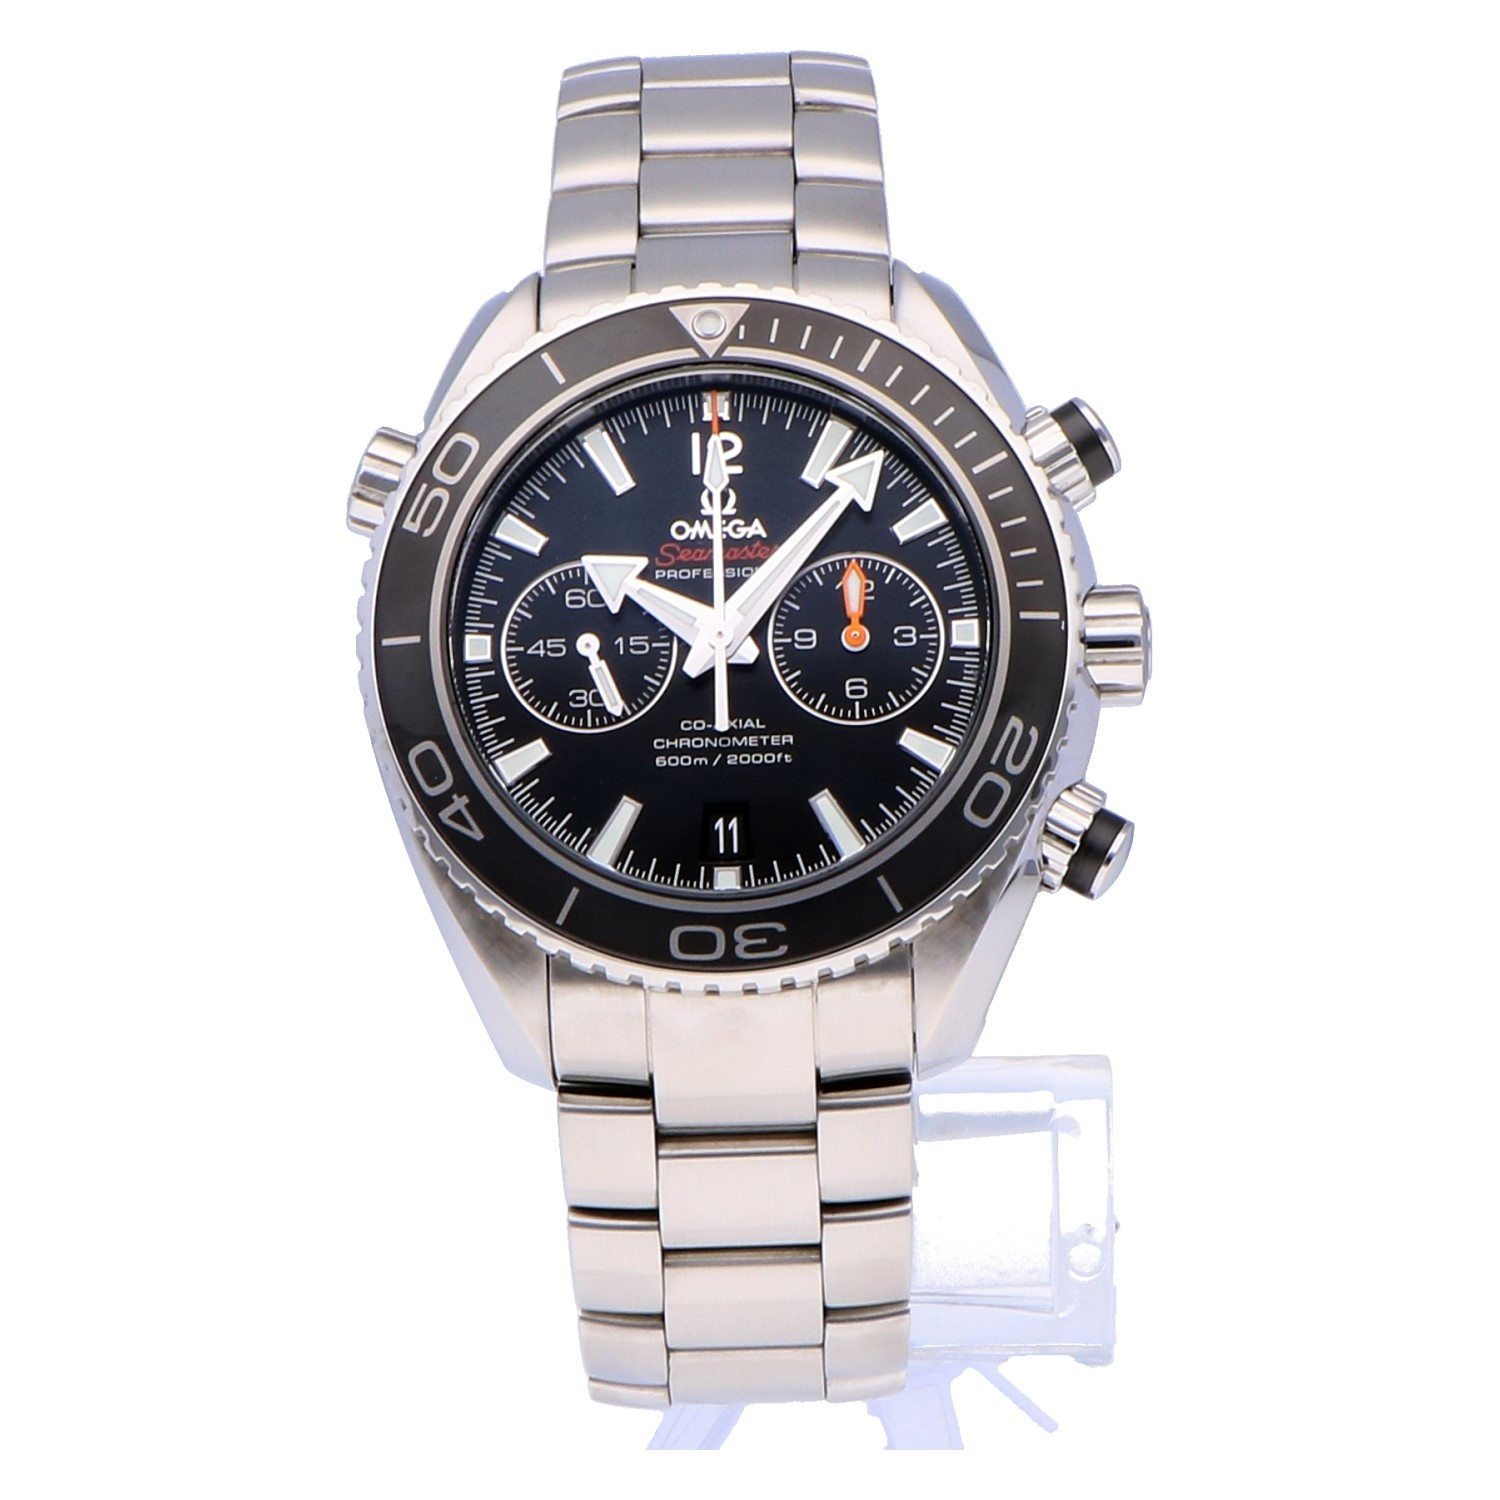 Omega Seamaster Planet Ocean Chronograph in 46mm 232.32.46.51.01.003